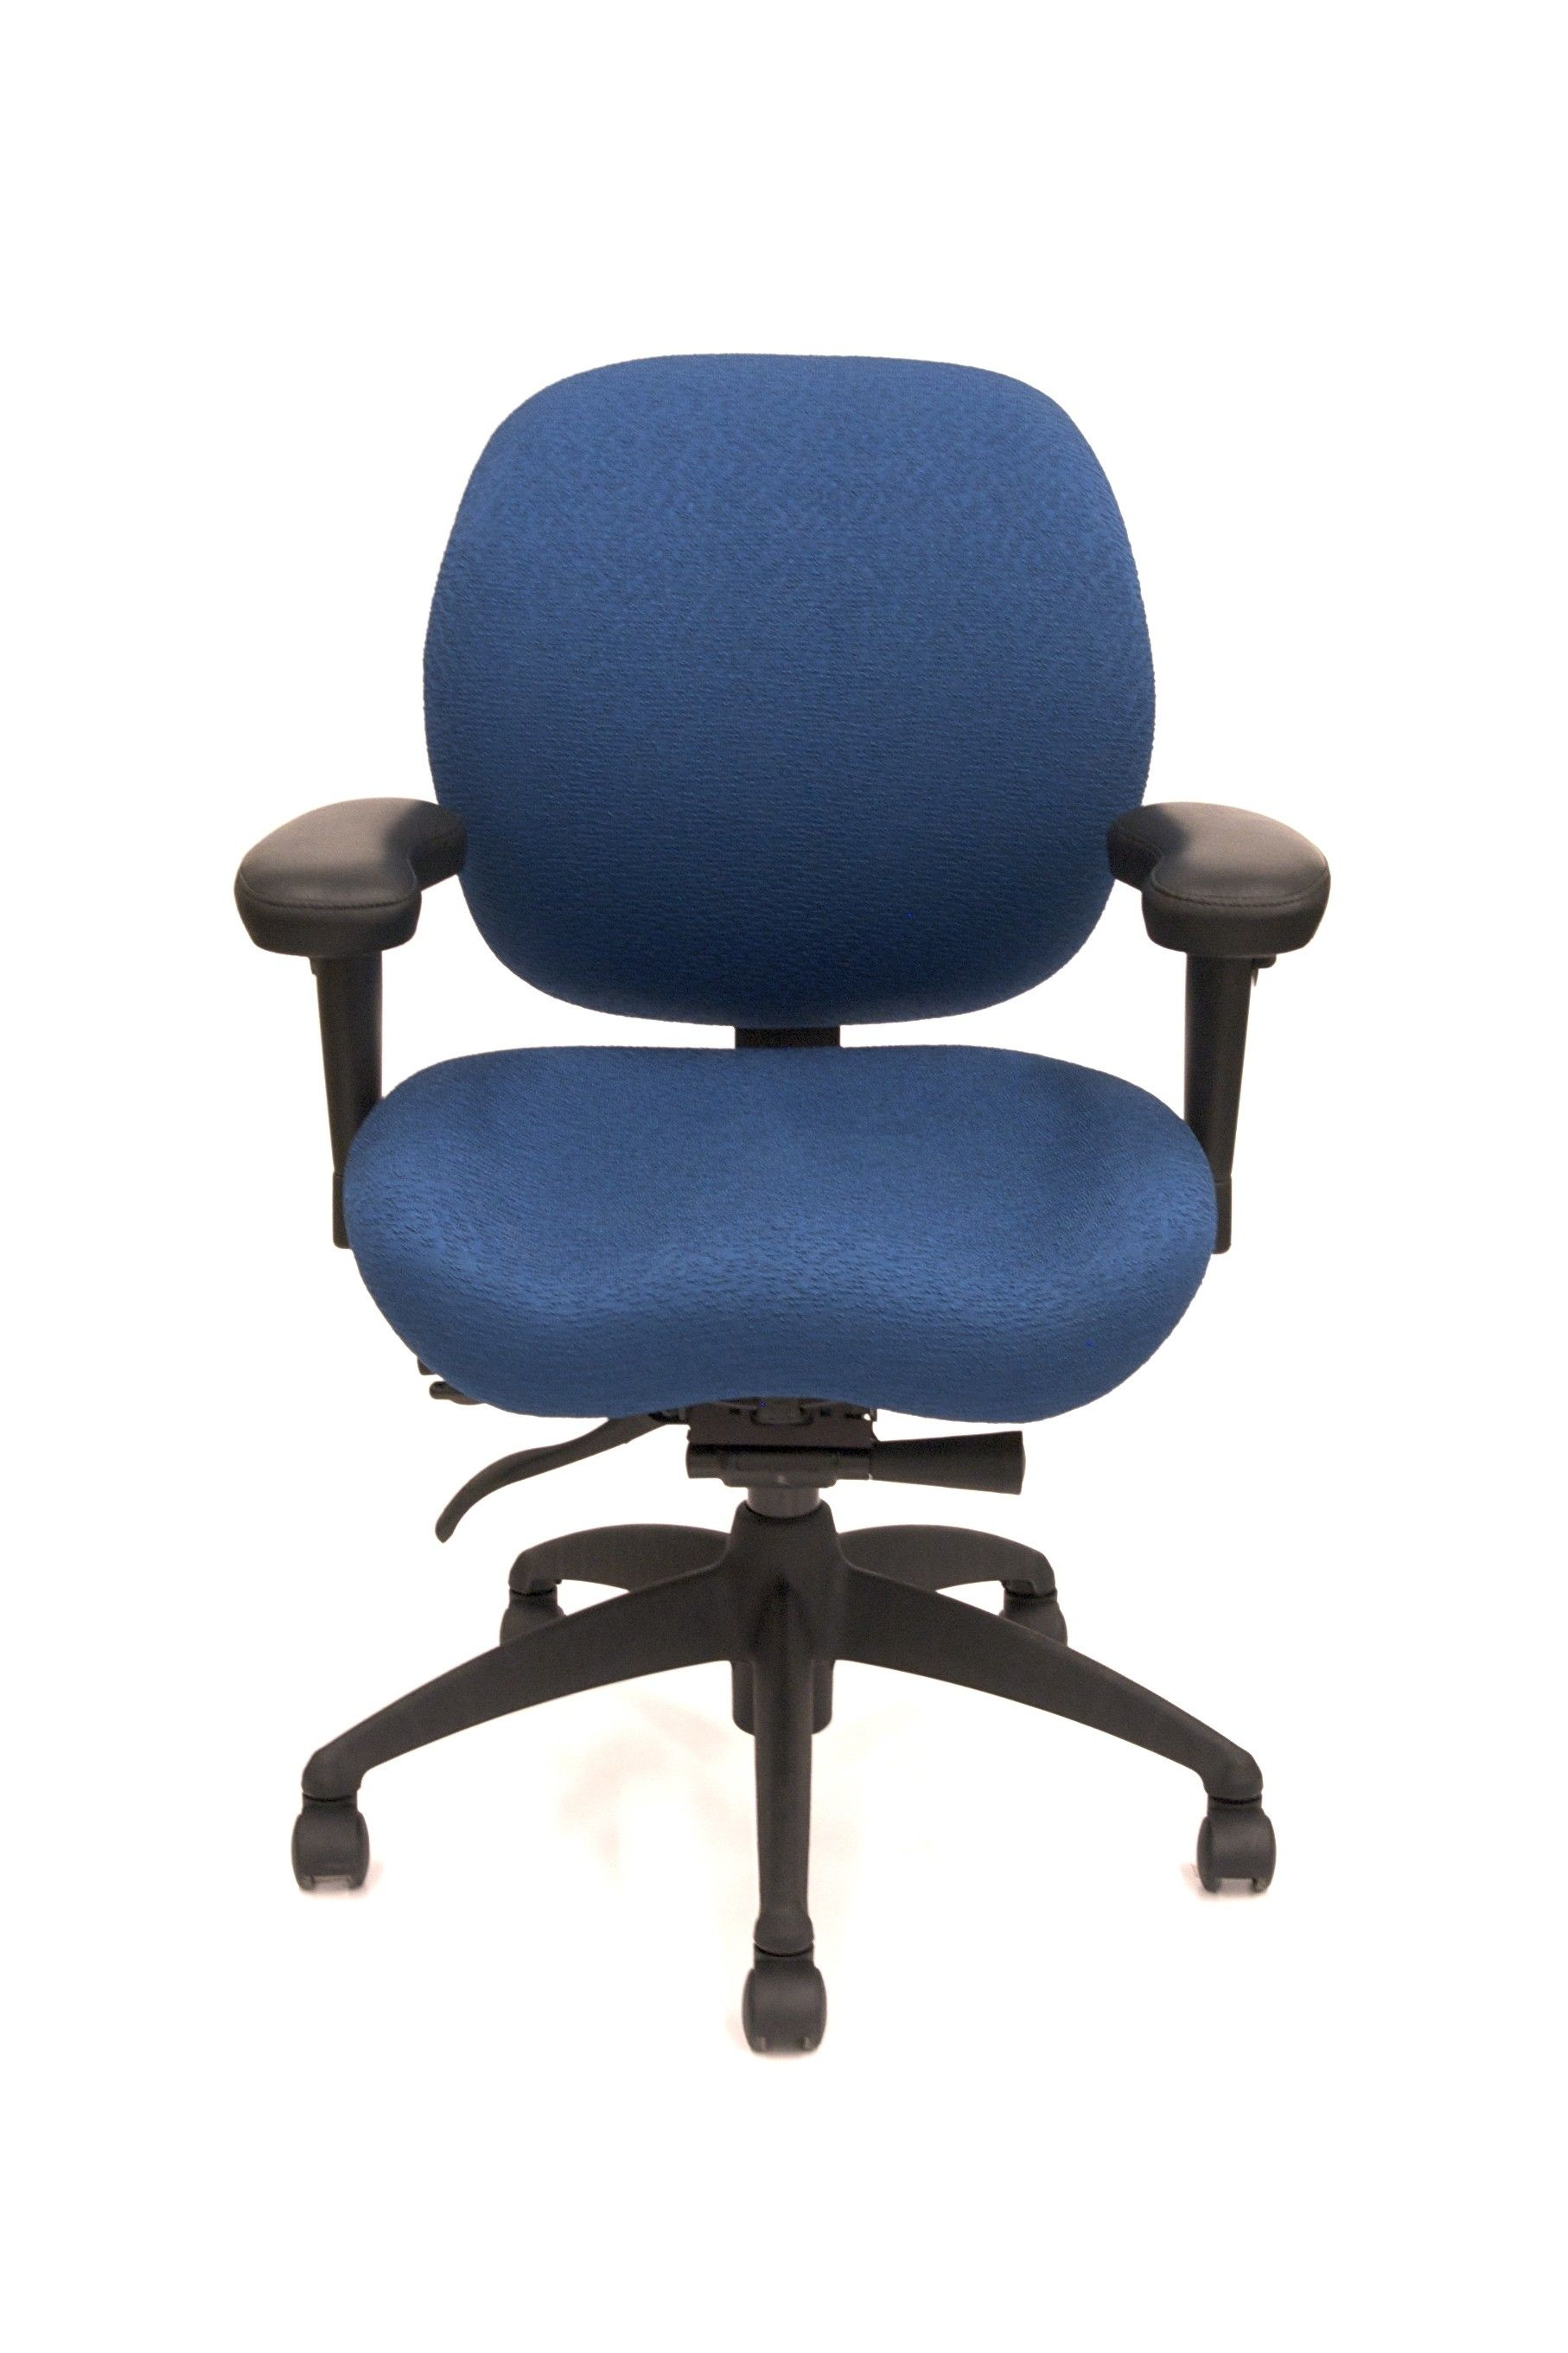 Lifeform® Management Grand Office Chair 995 I sat in it